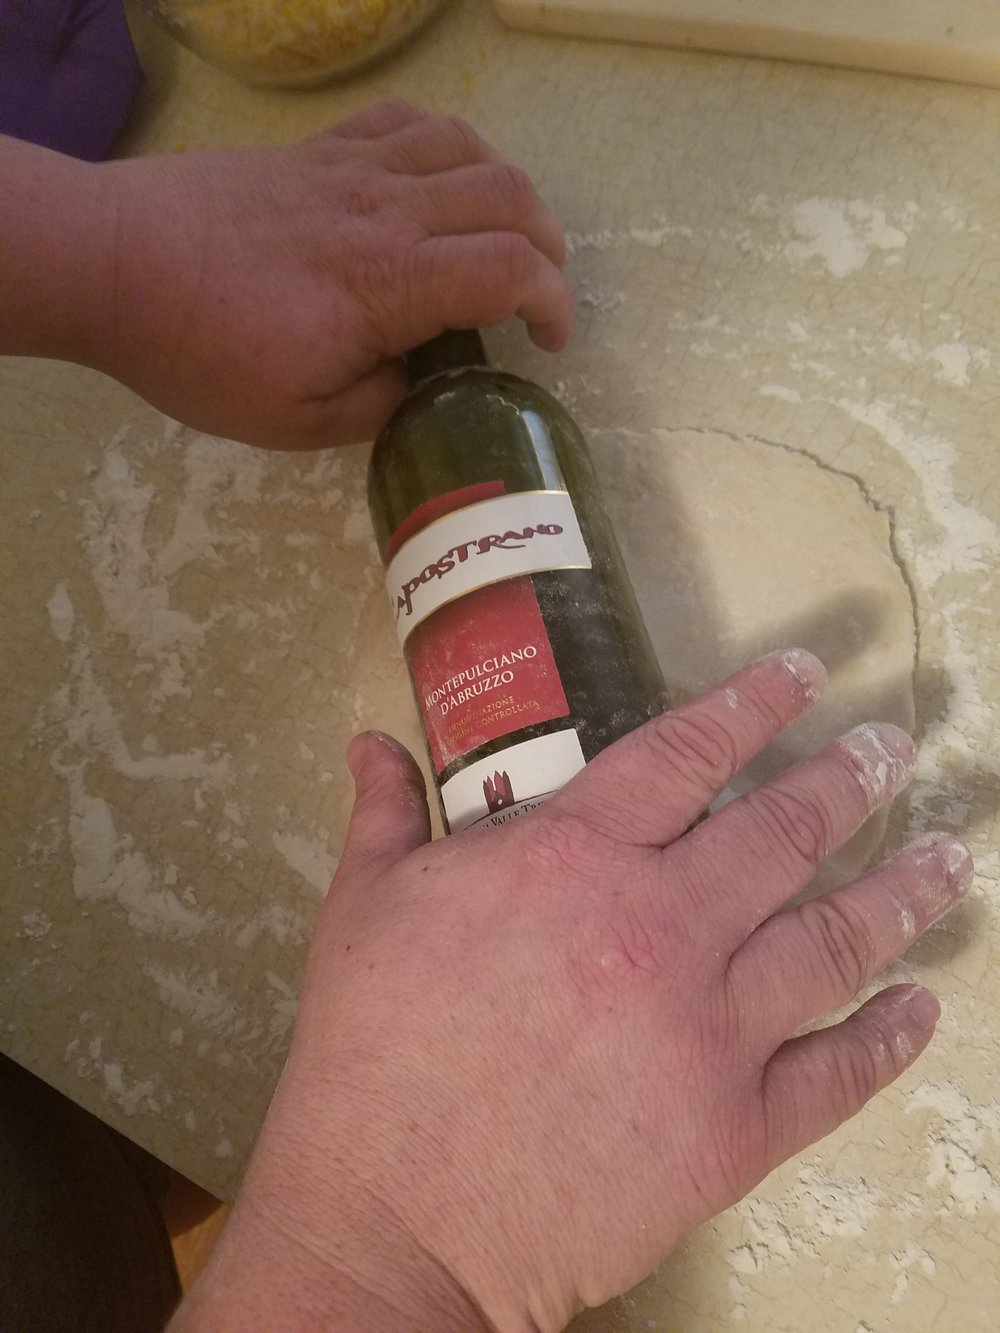 We didn't have a rolling pin but luckily my friend saves empty wine bottles like a maniac.